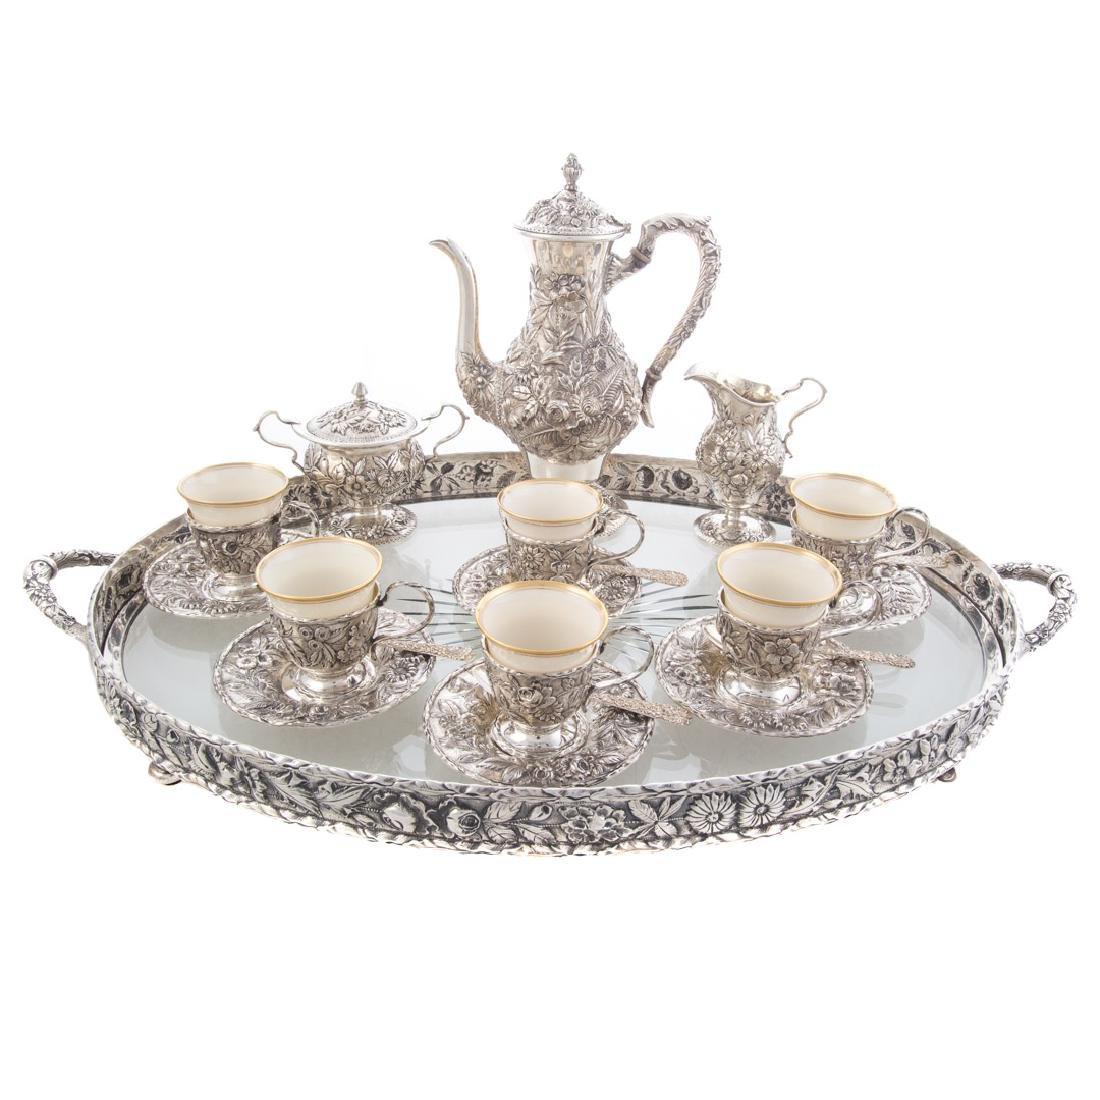 Kirk repousse sterling demitasse set with tray